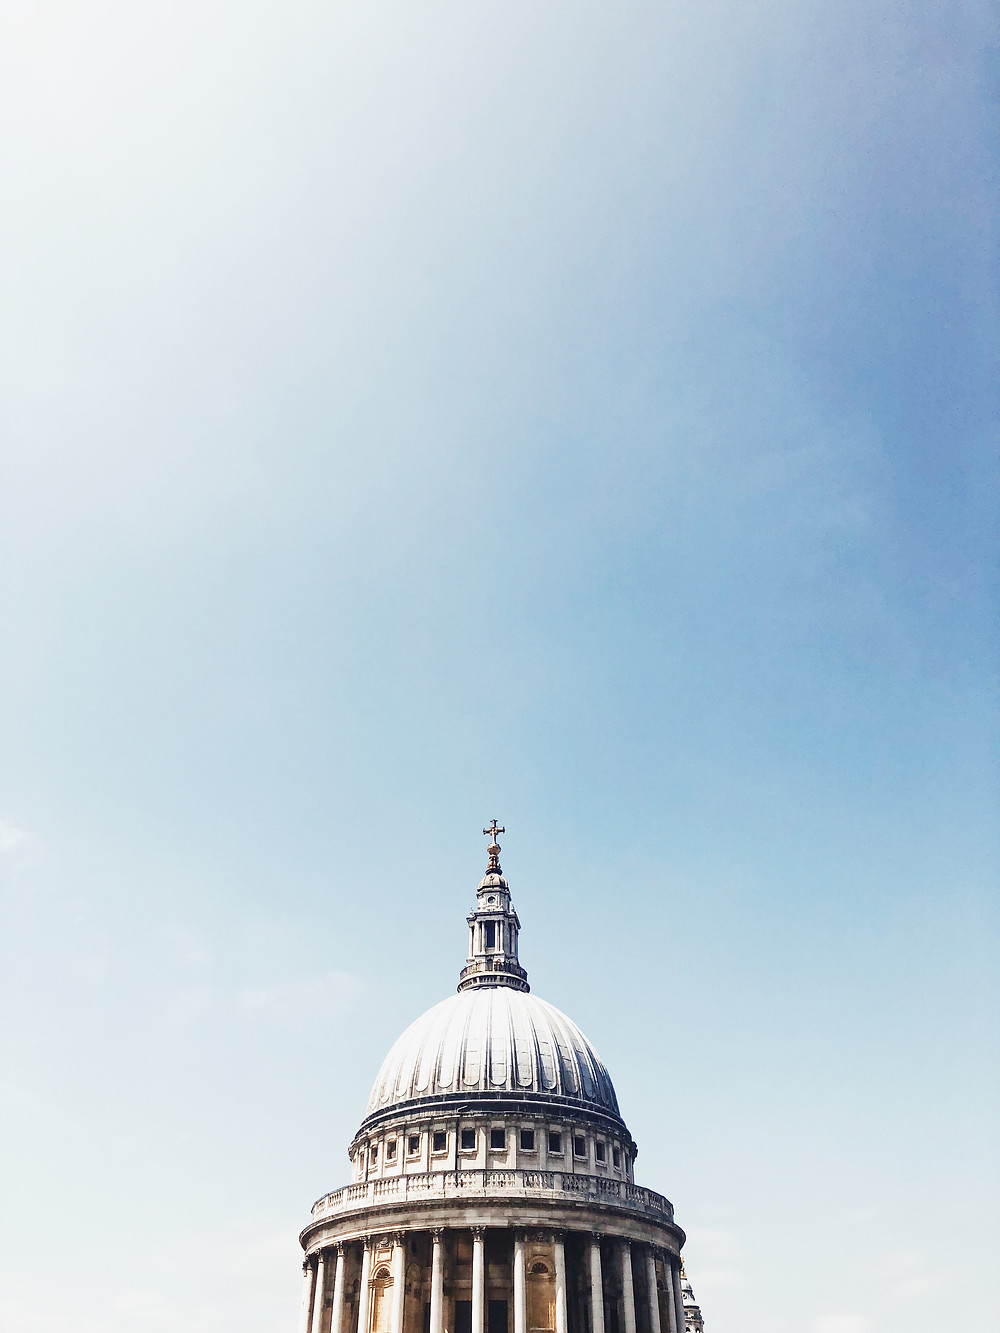 The top of St. Pauls Cathedral in London with a bright blue sky behind it